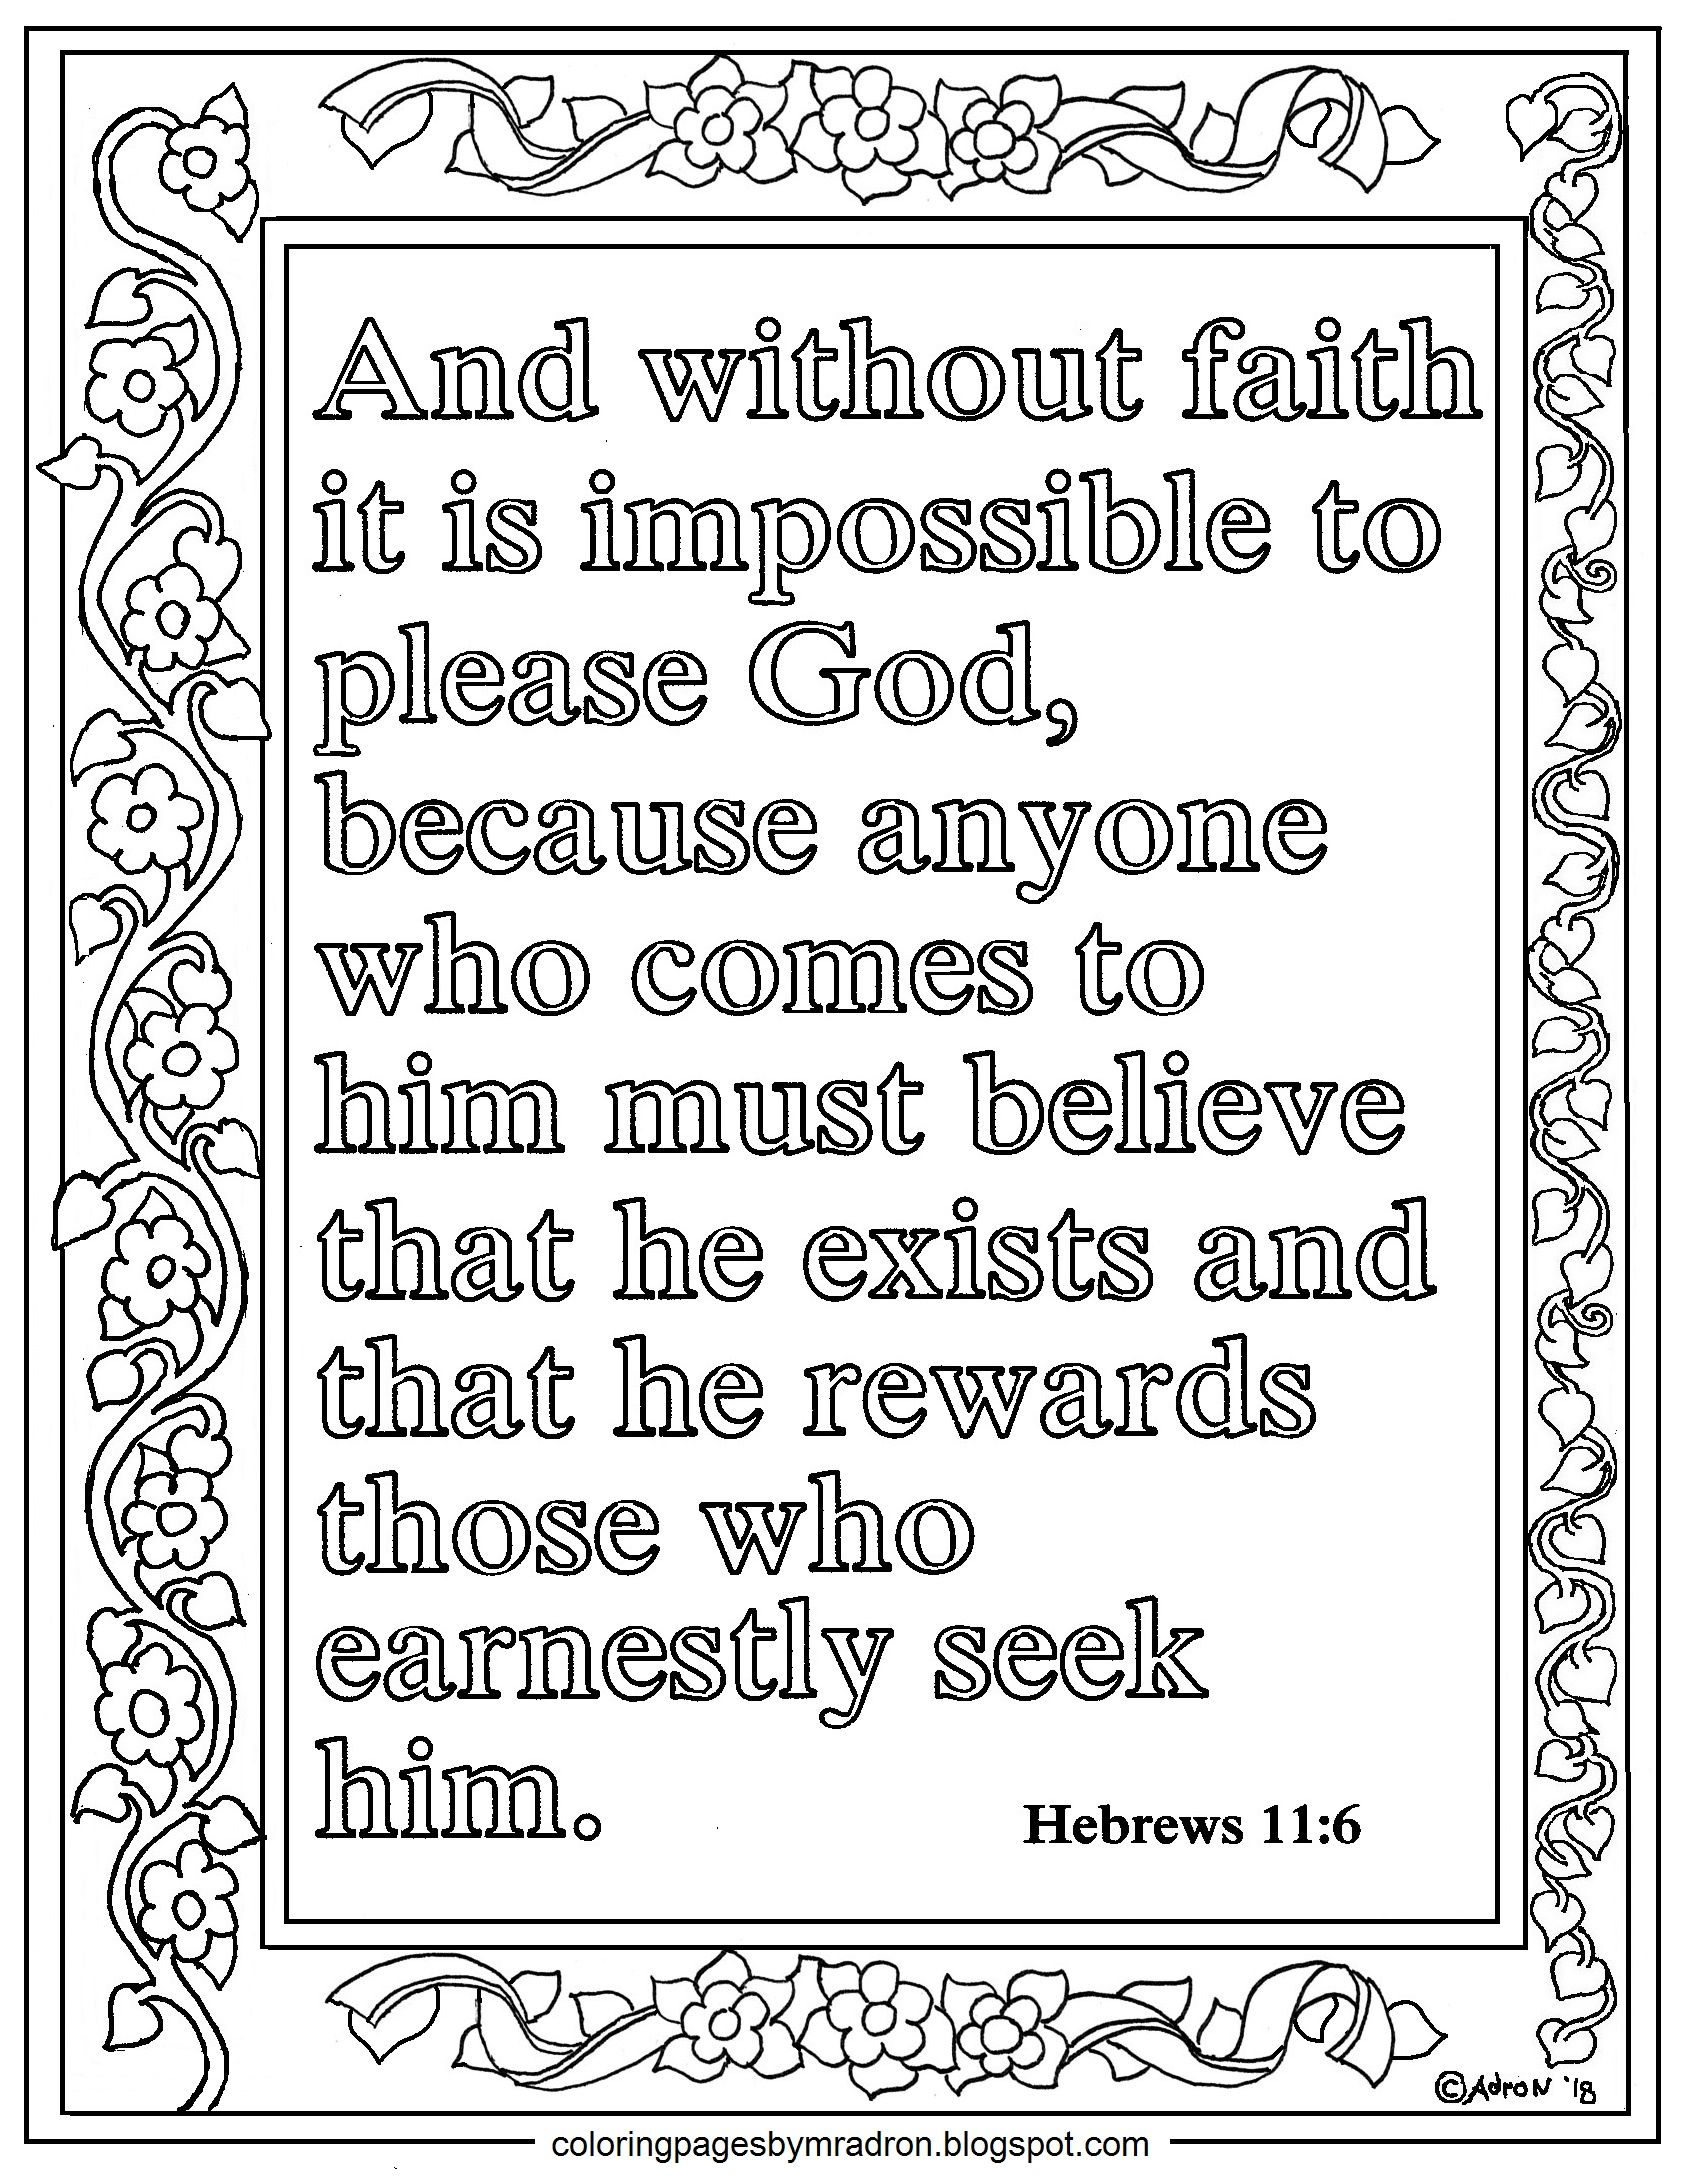 Hebrews 11 6 Print And Color Page Without Faith It Is Impossible